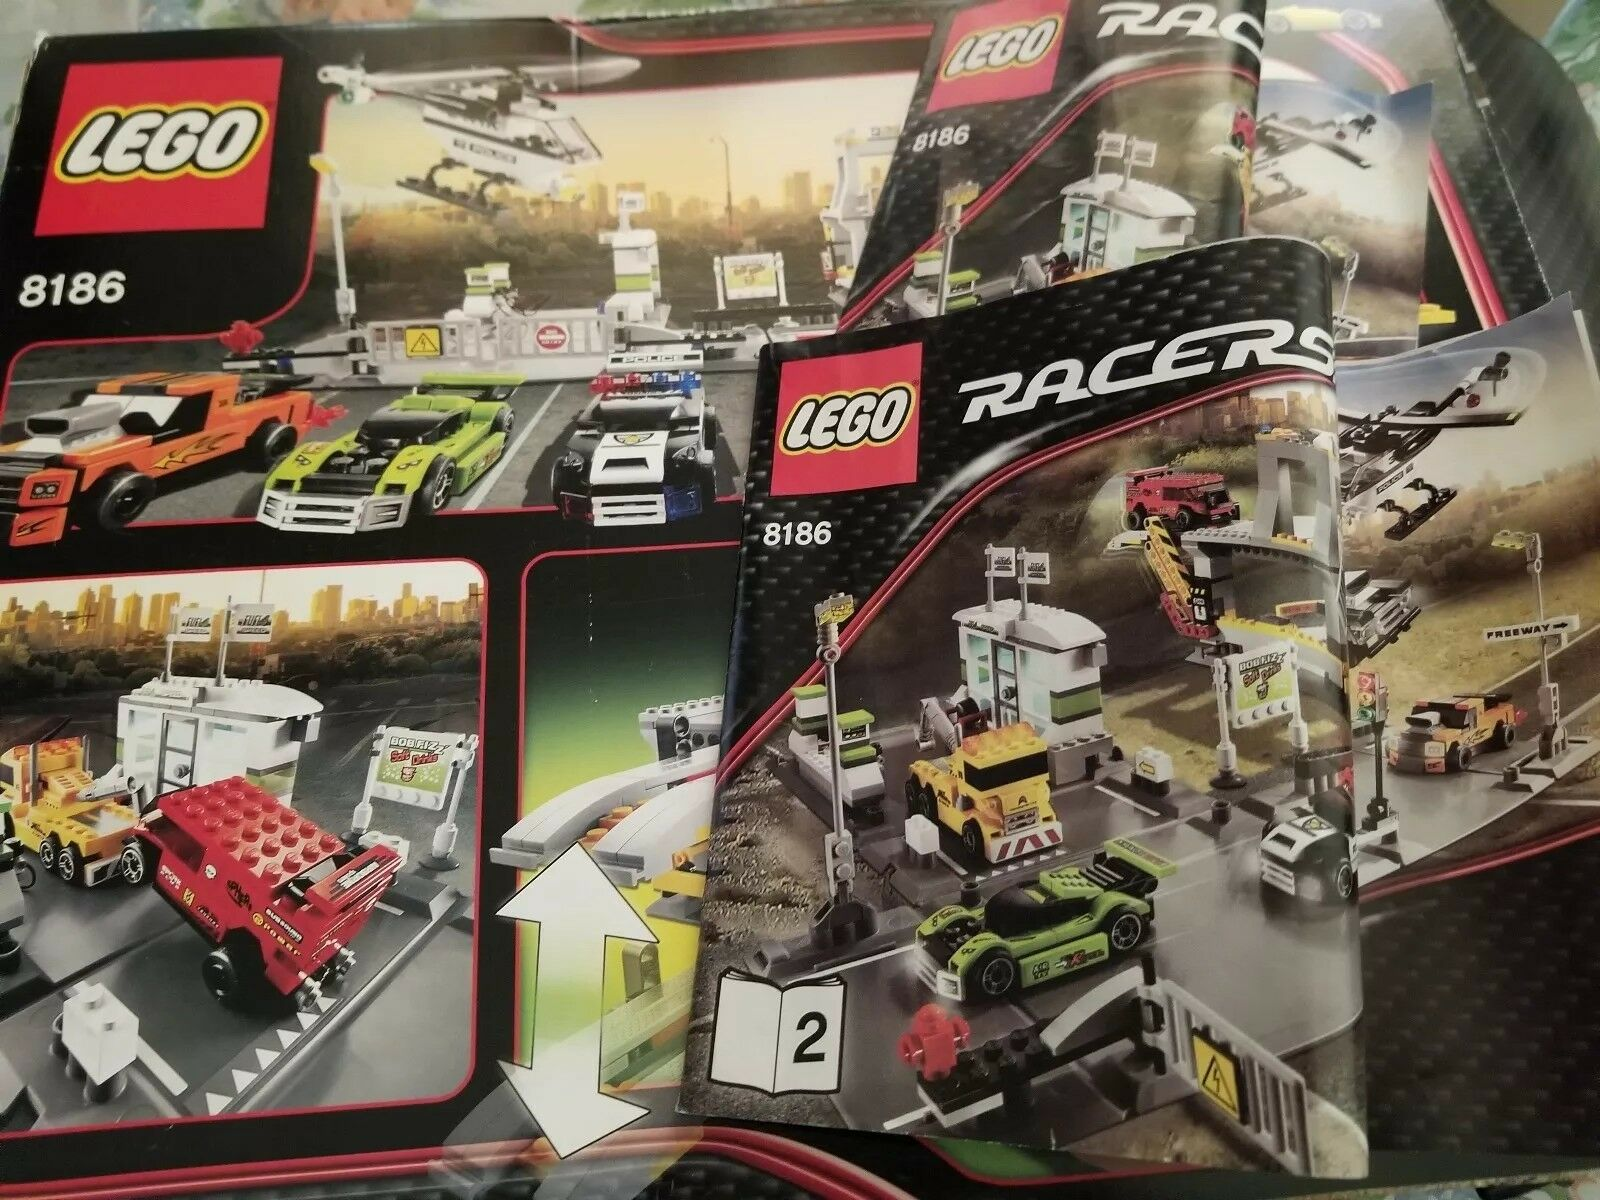 LEGO 8186 Racers Lego Racers Racers Racers 75%+ complete Sold as is fdc664